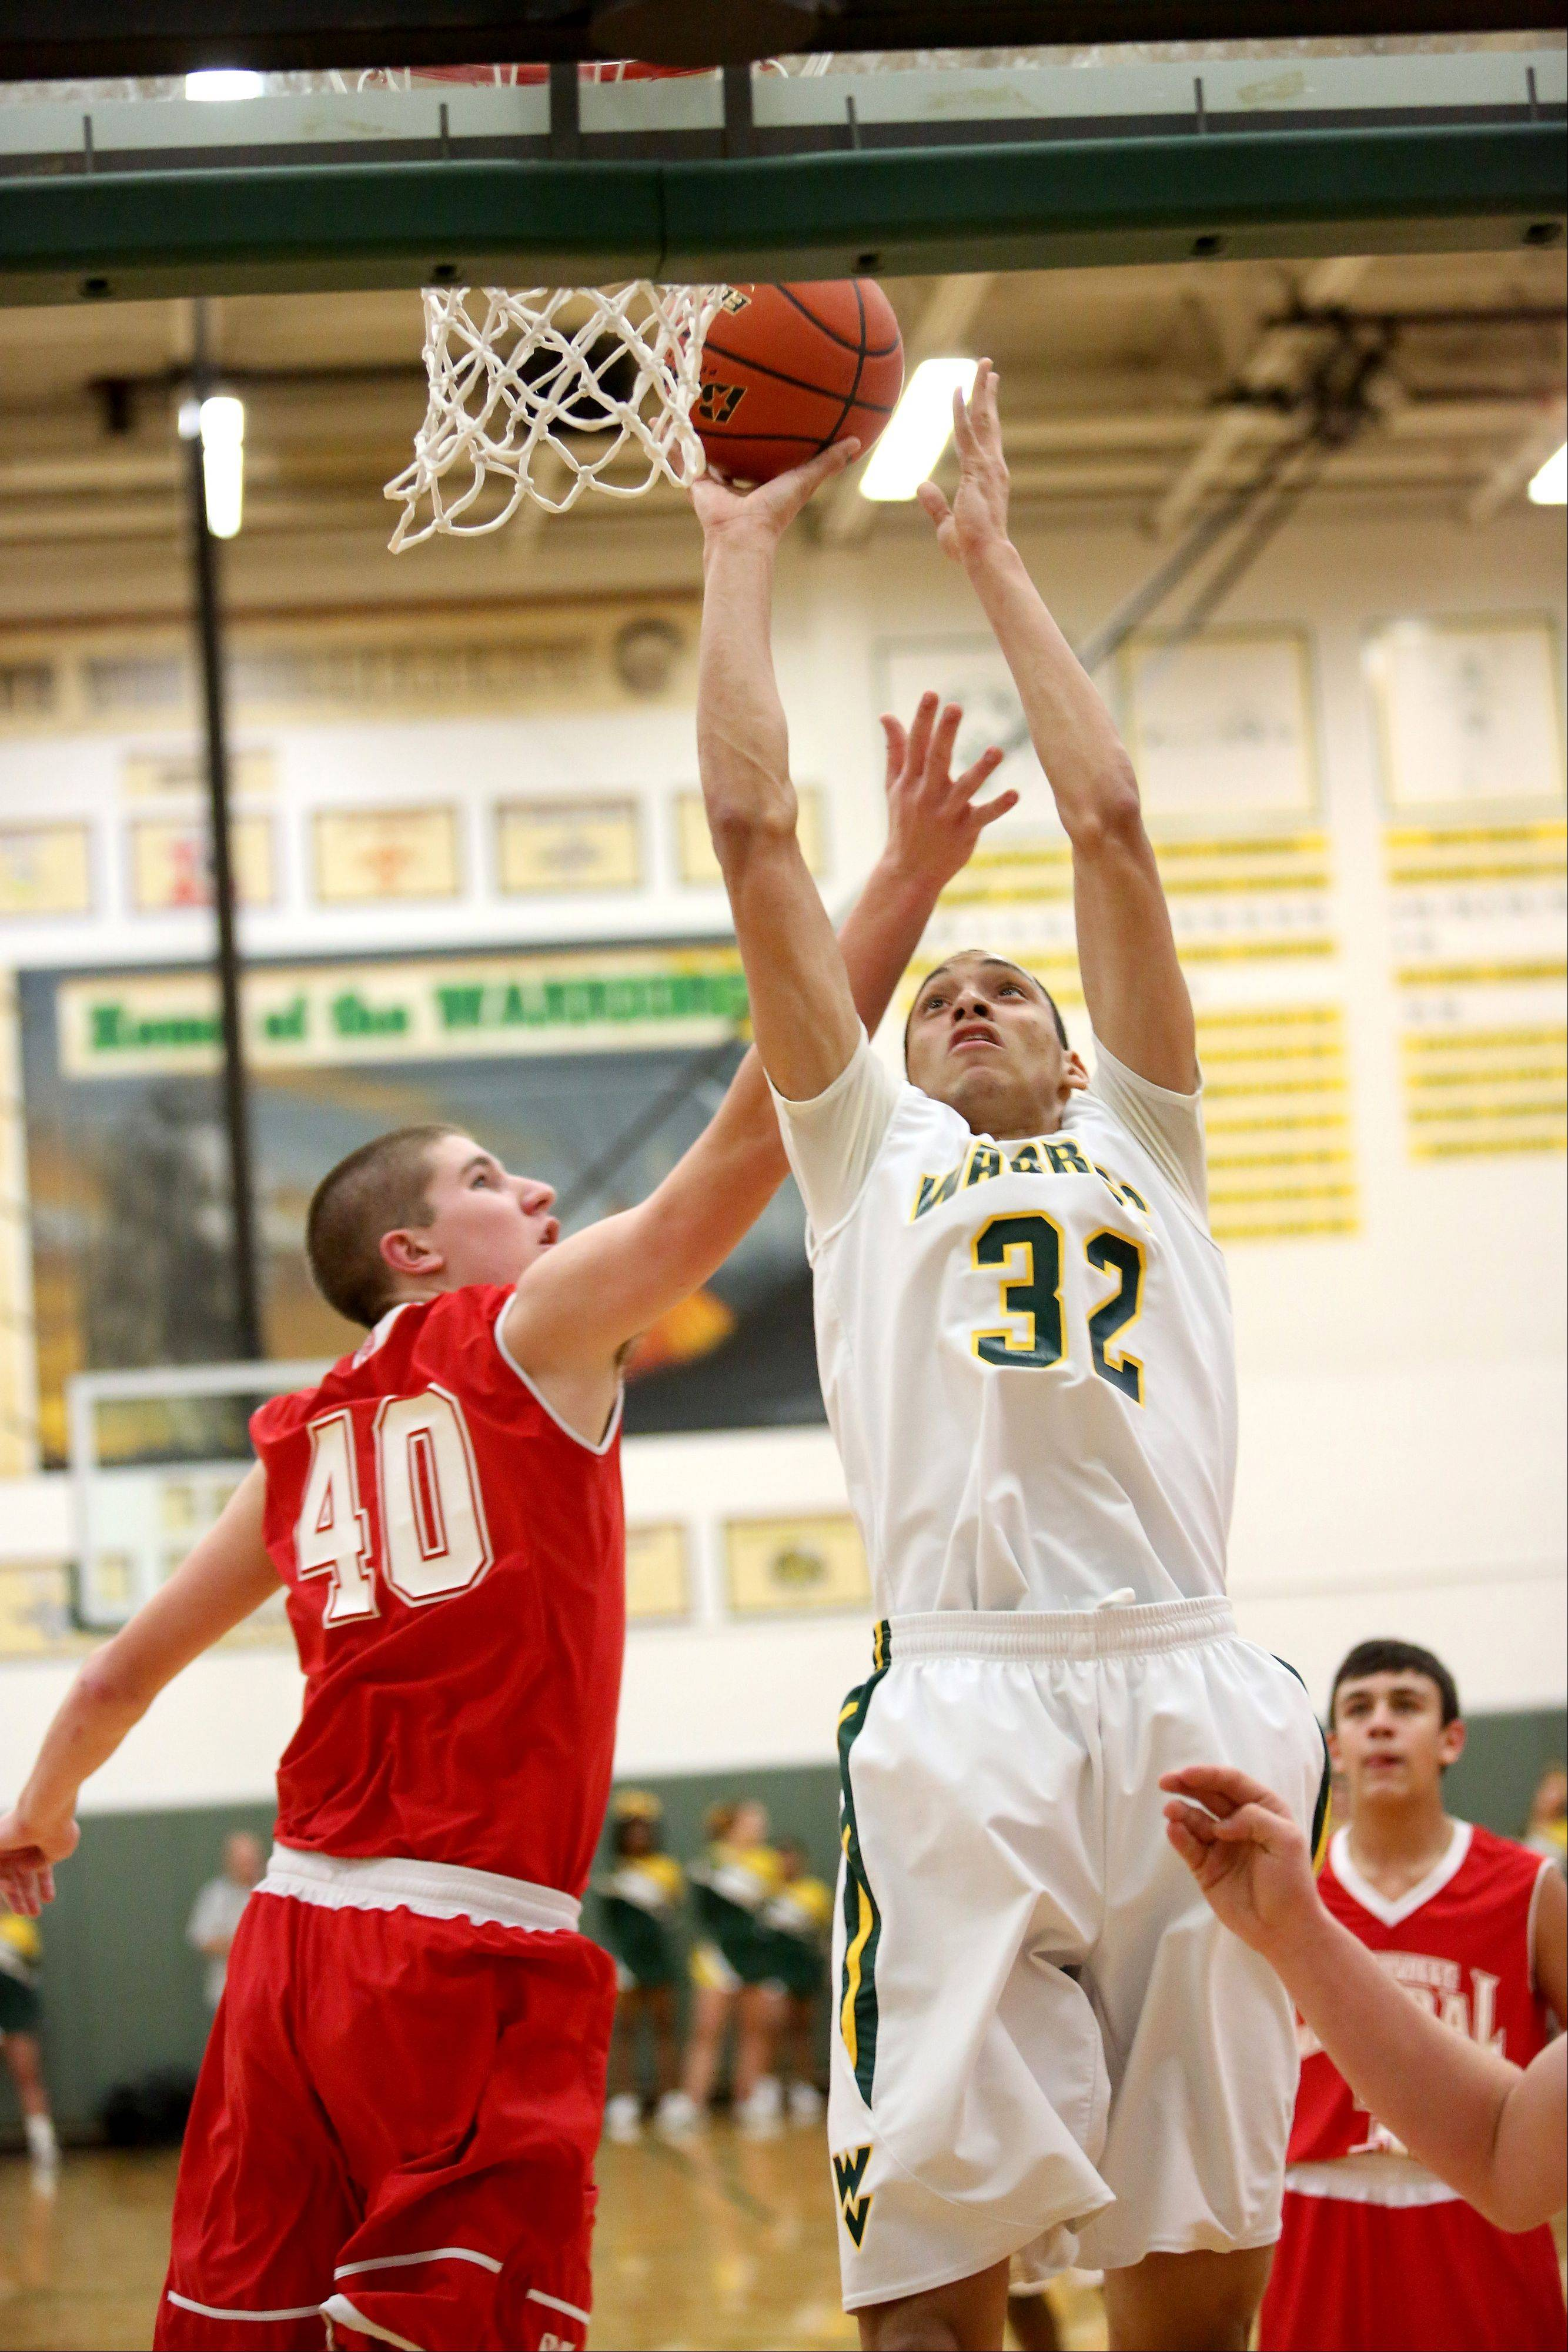 Bryan Jefferson of Waubonsie Valley goes up for two points as Patrick Maloney of Naperville Central, left, defends in boys basketball action on Tuesday in Aurora.